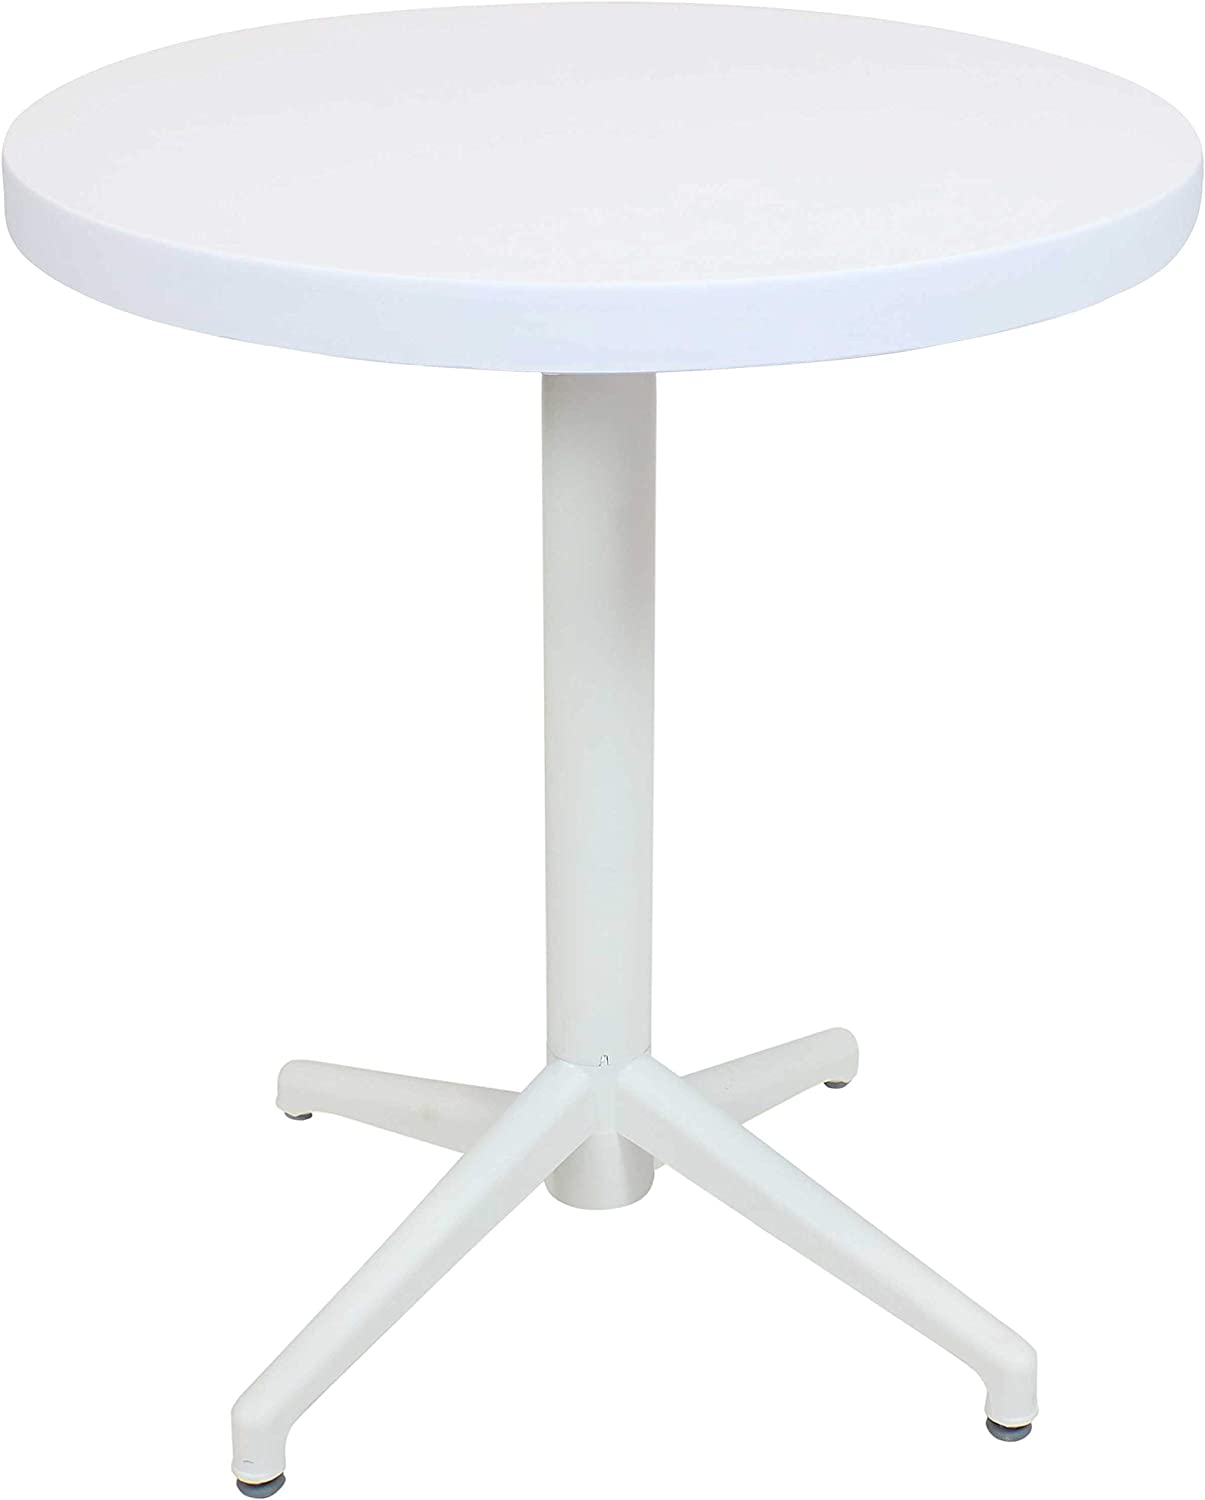 Sunnydaze All-Weather Round Plastic Patio Table - Foldable Design - Commercial Grade - Balcony Deck Dining Room Indoor or Outdoor - White - 28-Inch